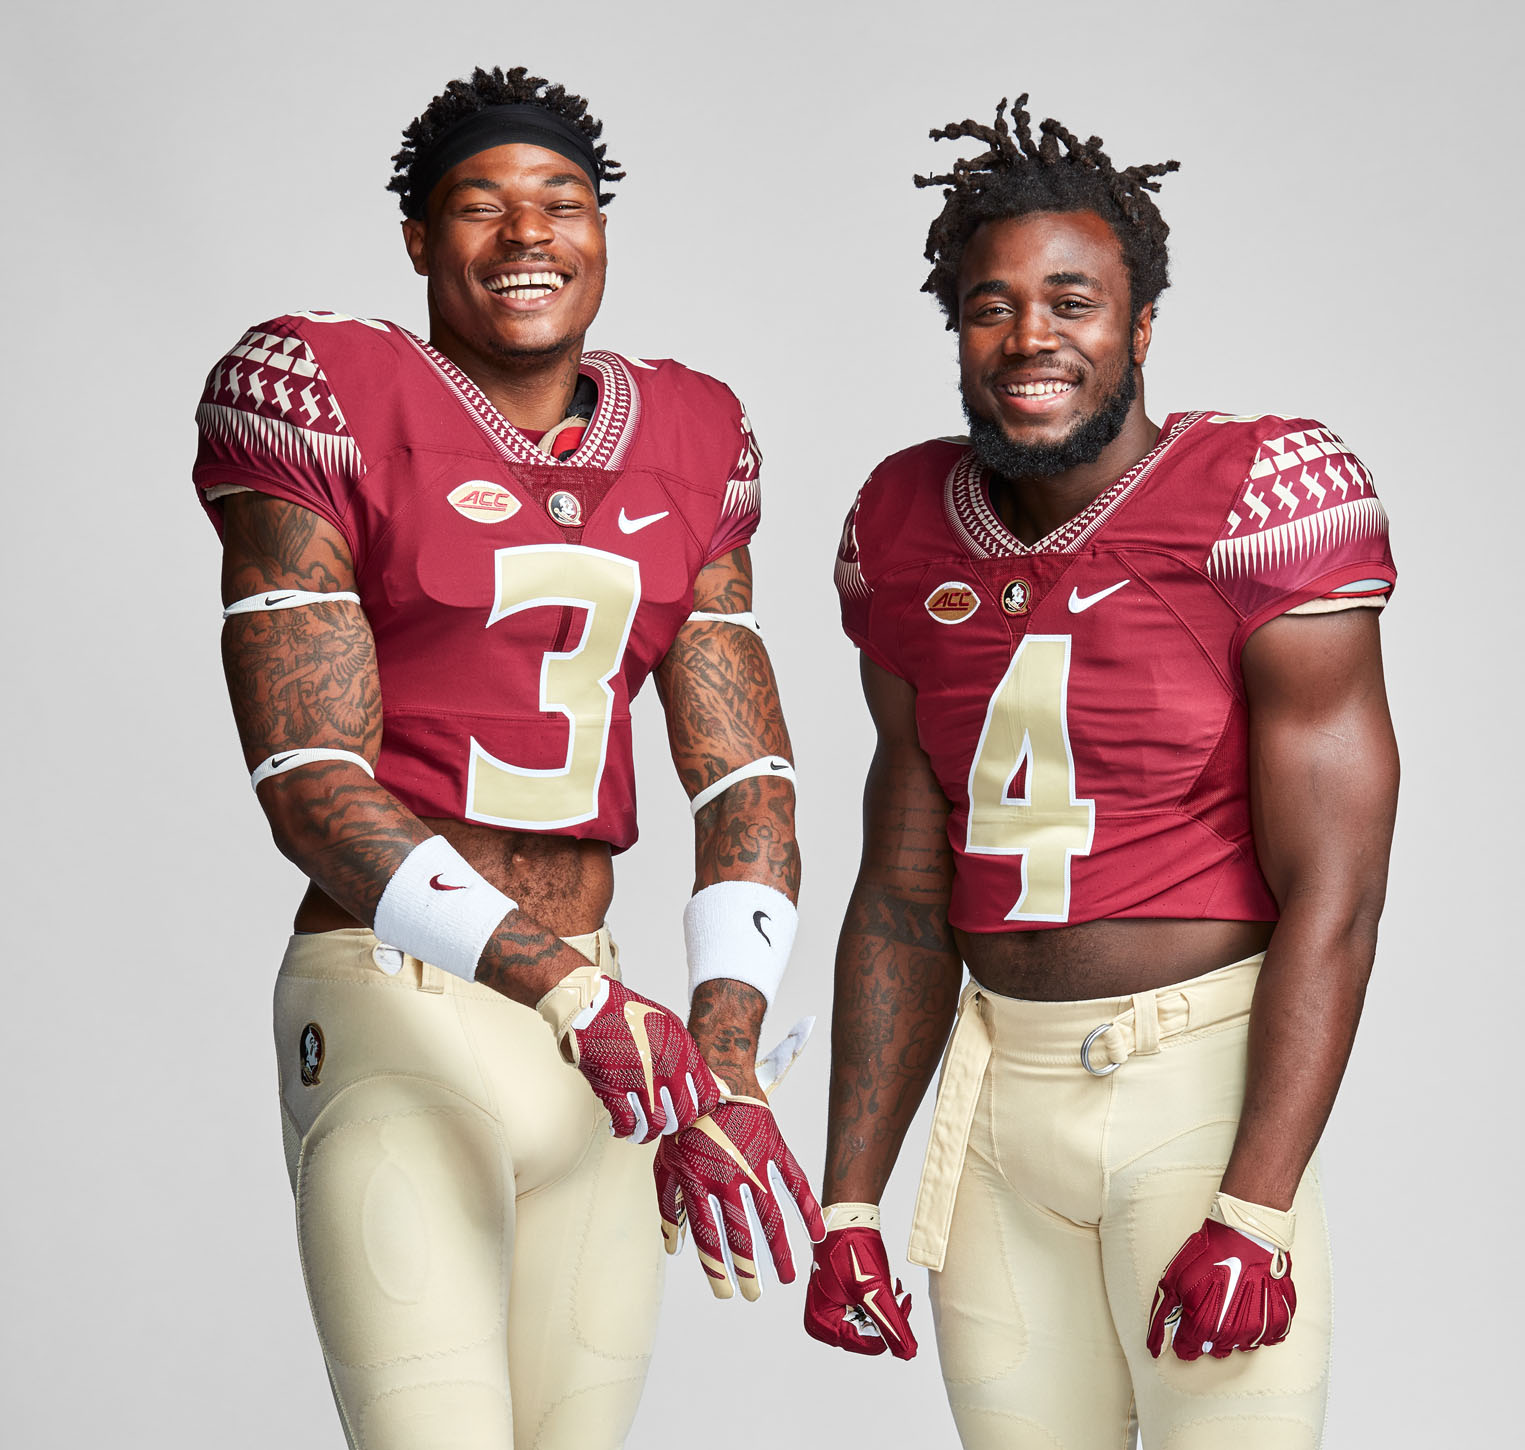 ESPN_FSU_3JAMES_4COOK_0260